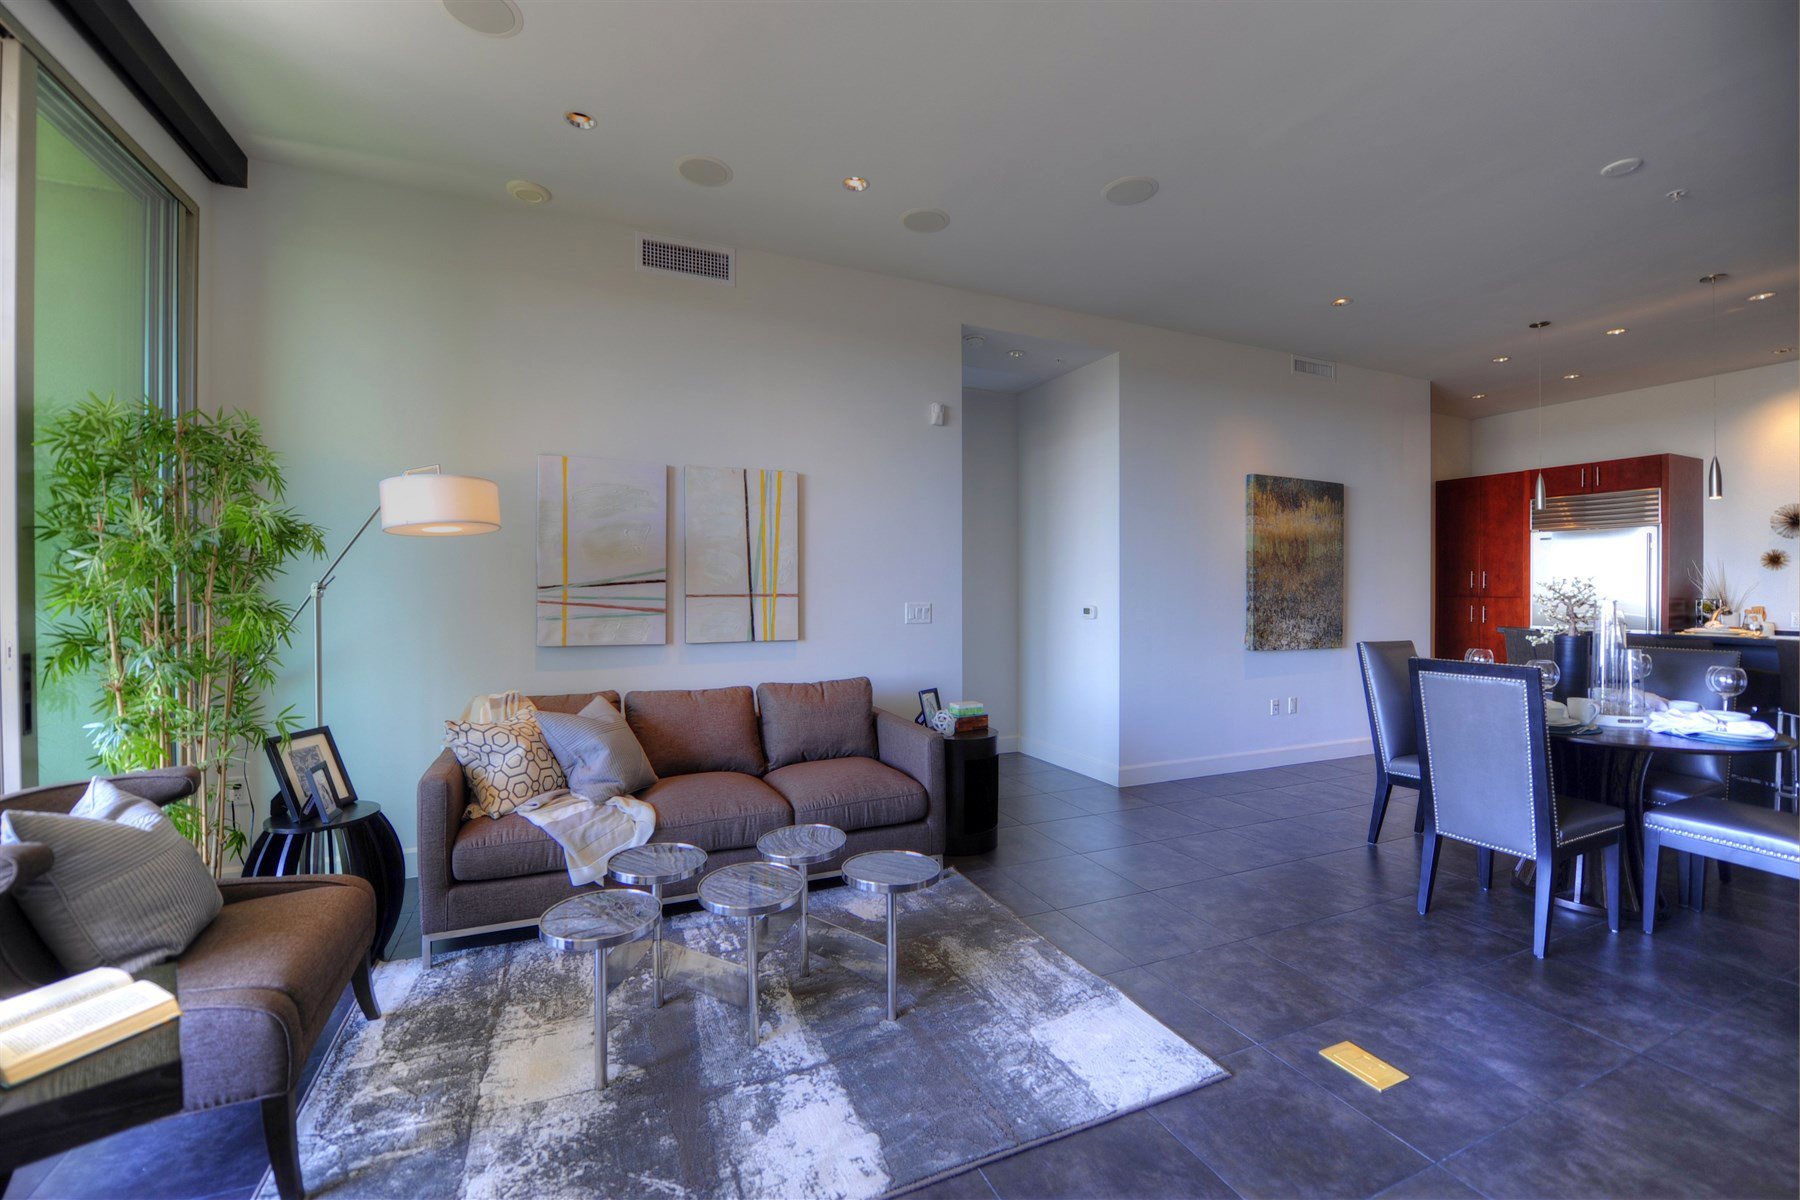 Condominium for Sale at Exquisite Luxury Scottsdale Plaza Lofts Condo With Beautiful Views 15215 N Kierland Blvd #635 Scottsdale, Arizona 85254 United States